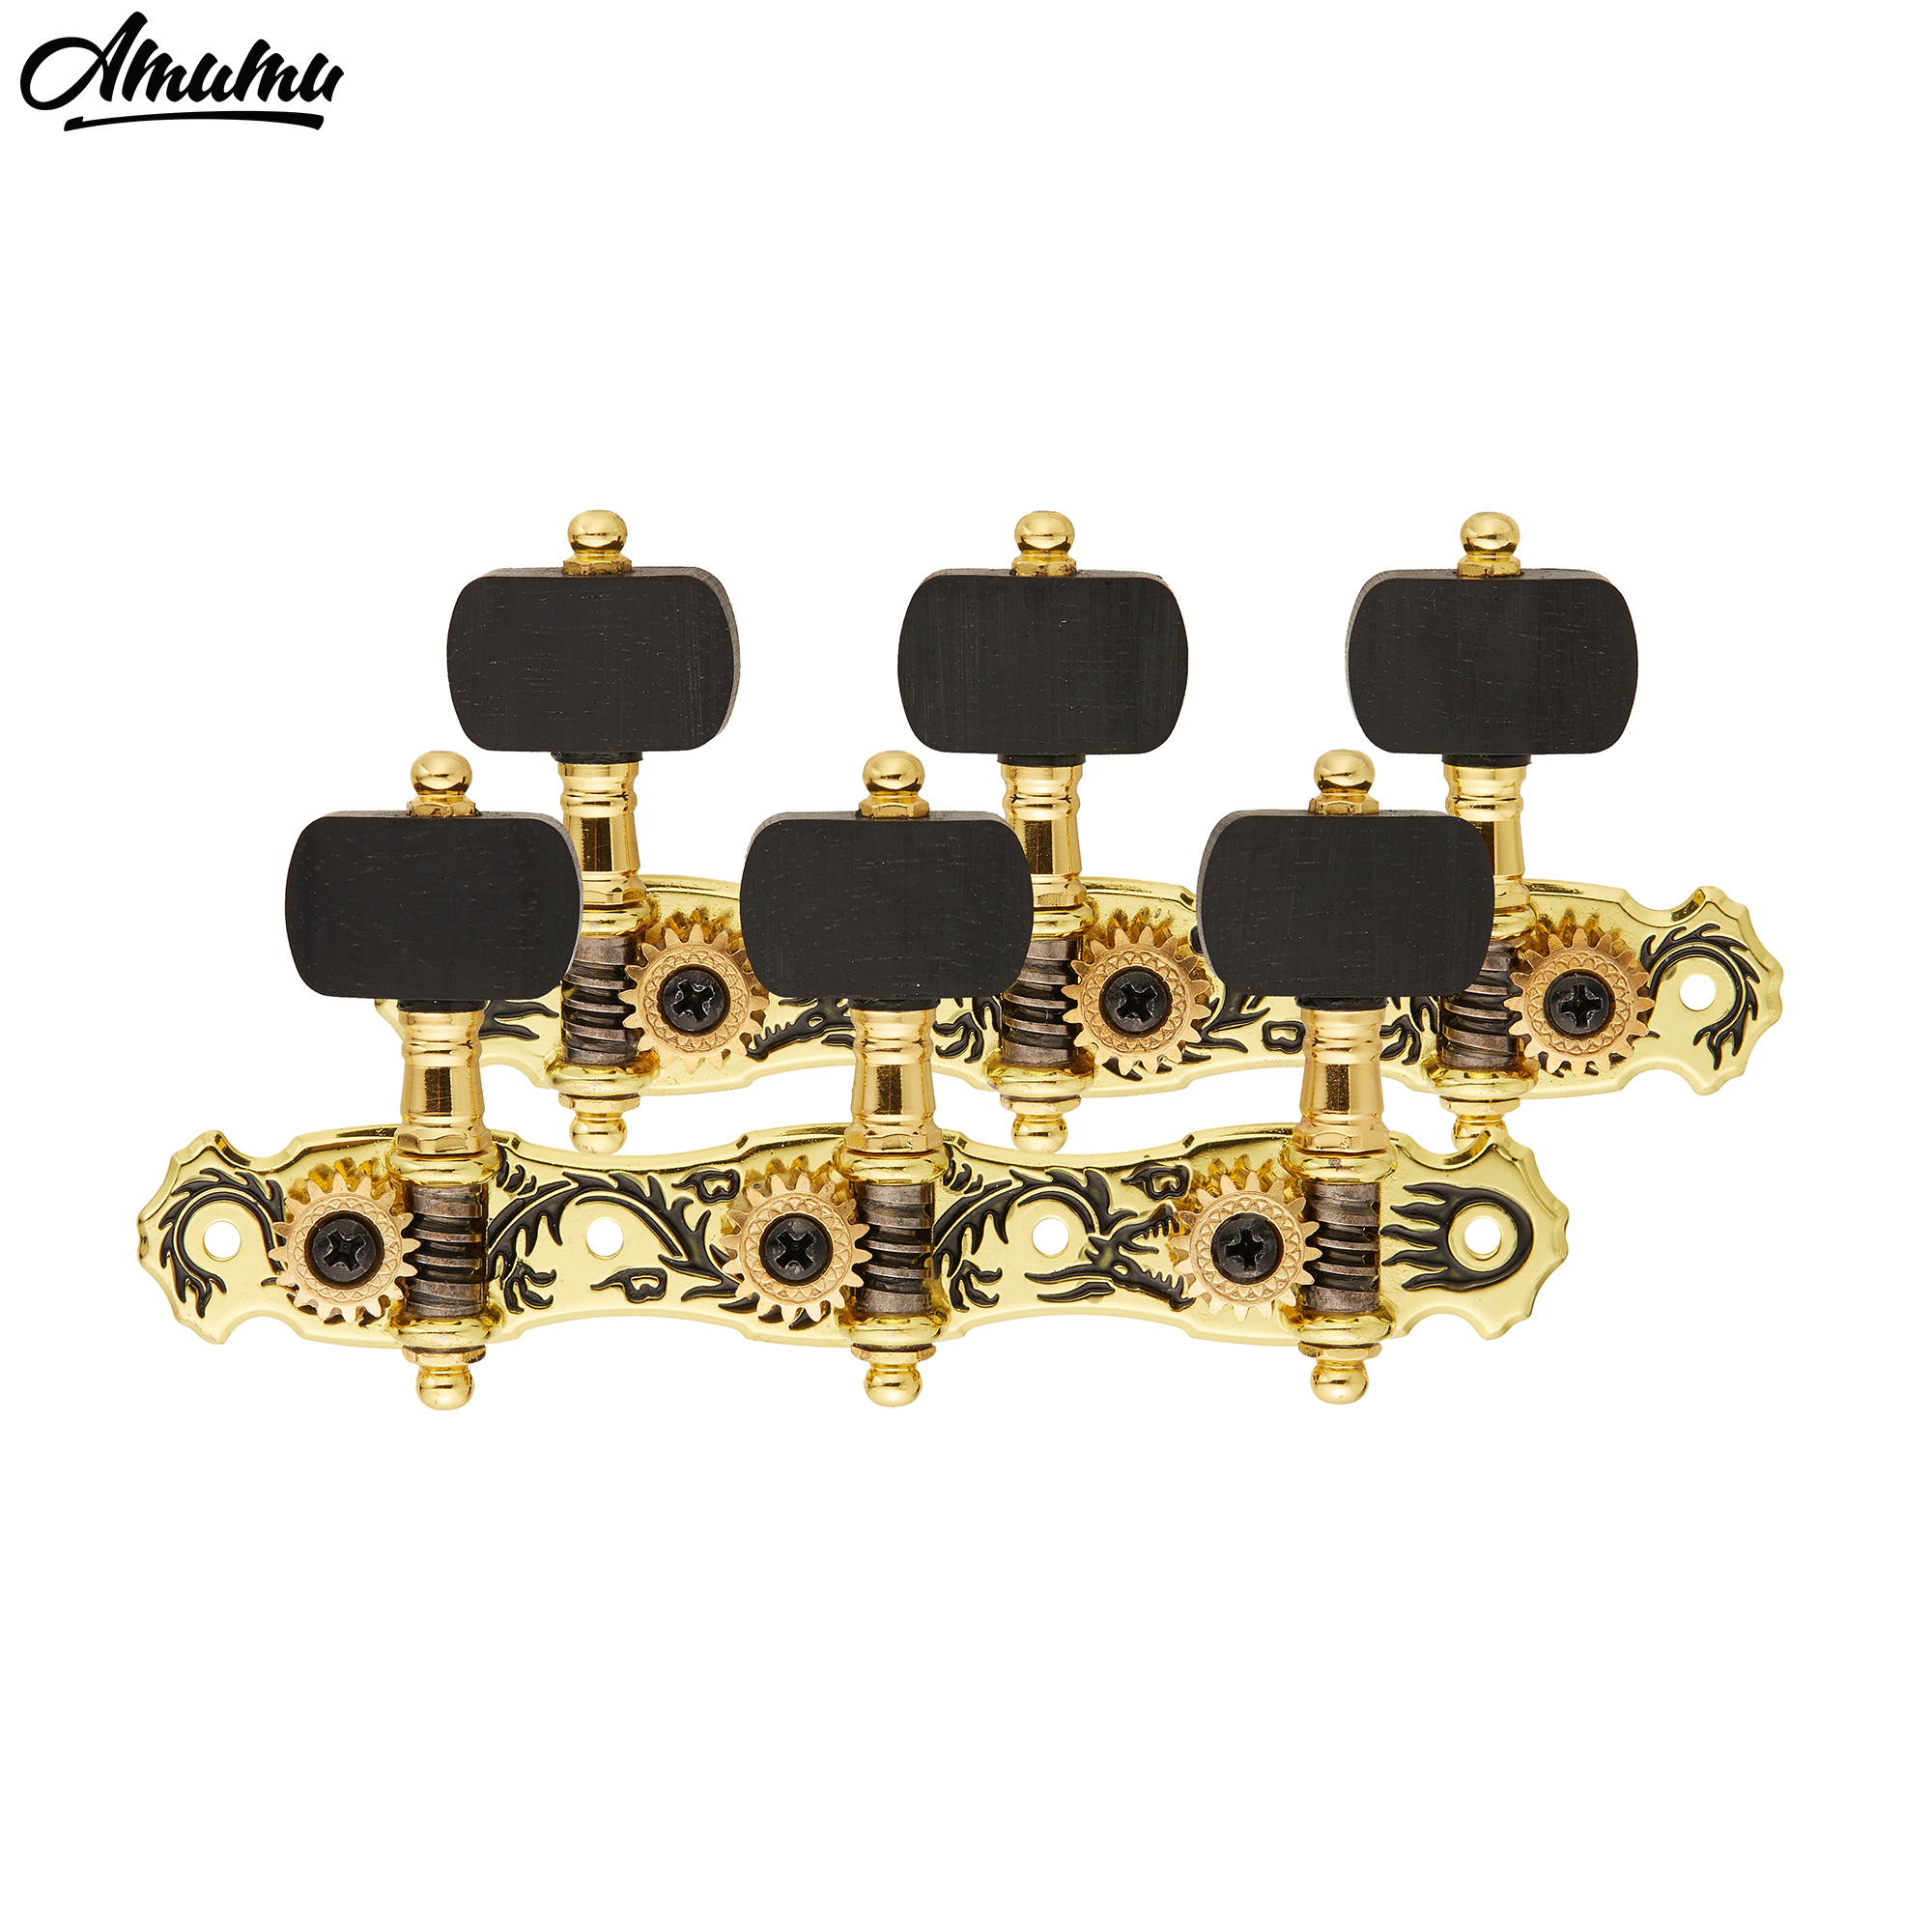 Gold Plated Black Dragon Guitar Machine Heads Classical Guitar Tuning Pegs Tuner Keys with Ebony Knob  3L and 3R<br>